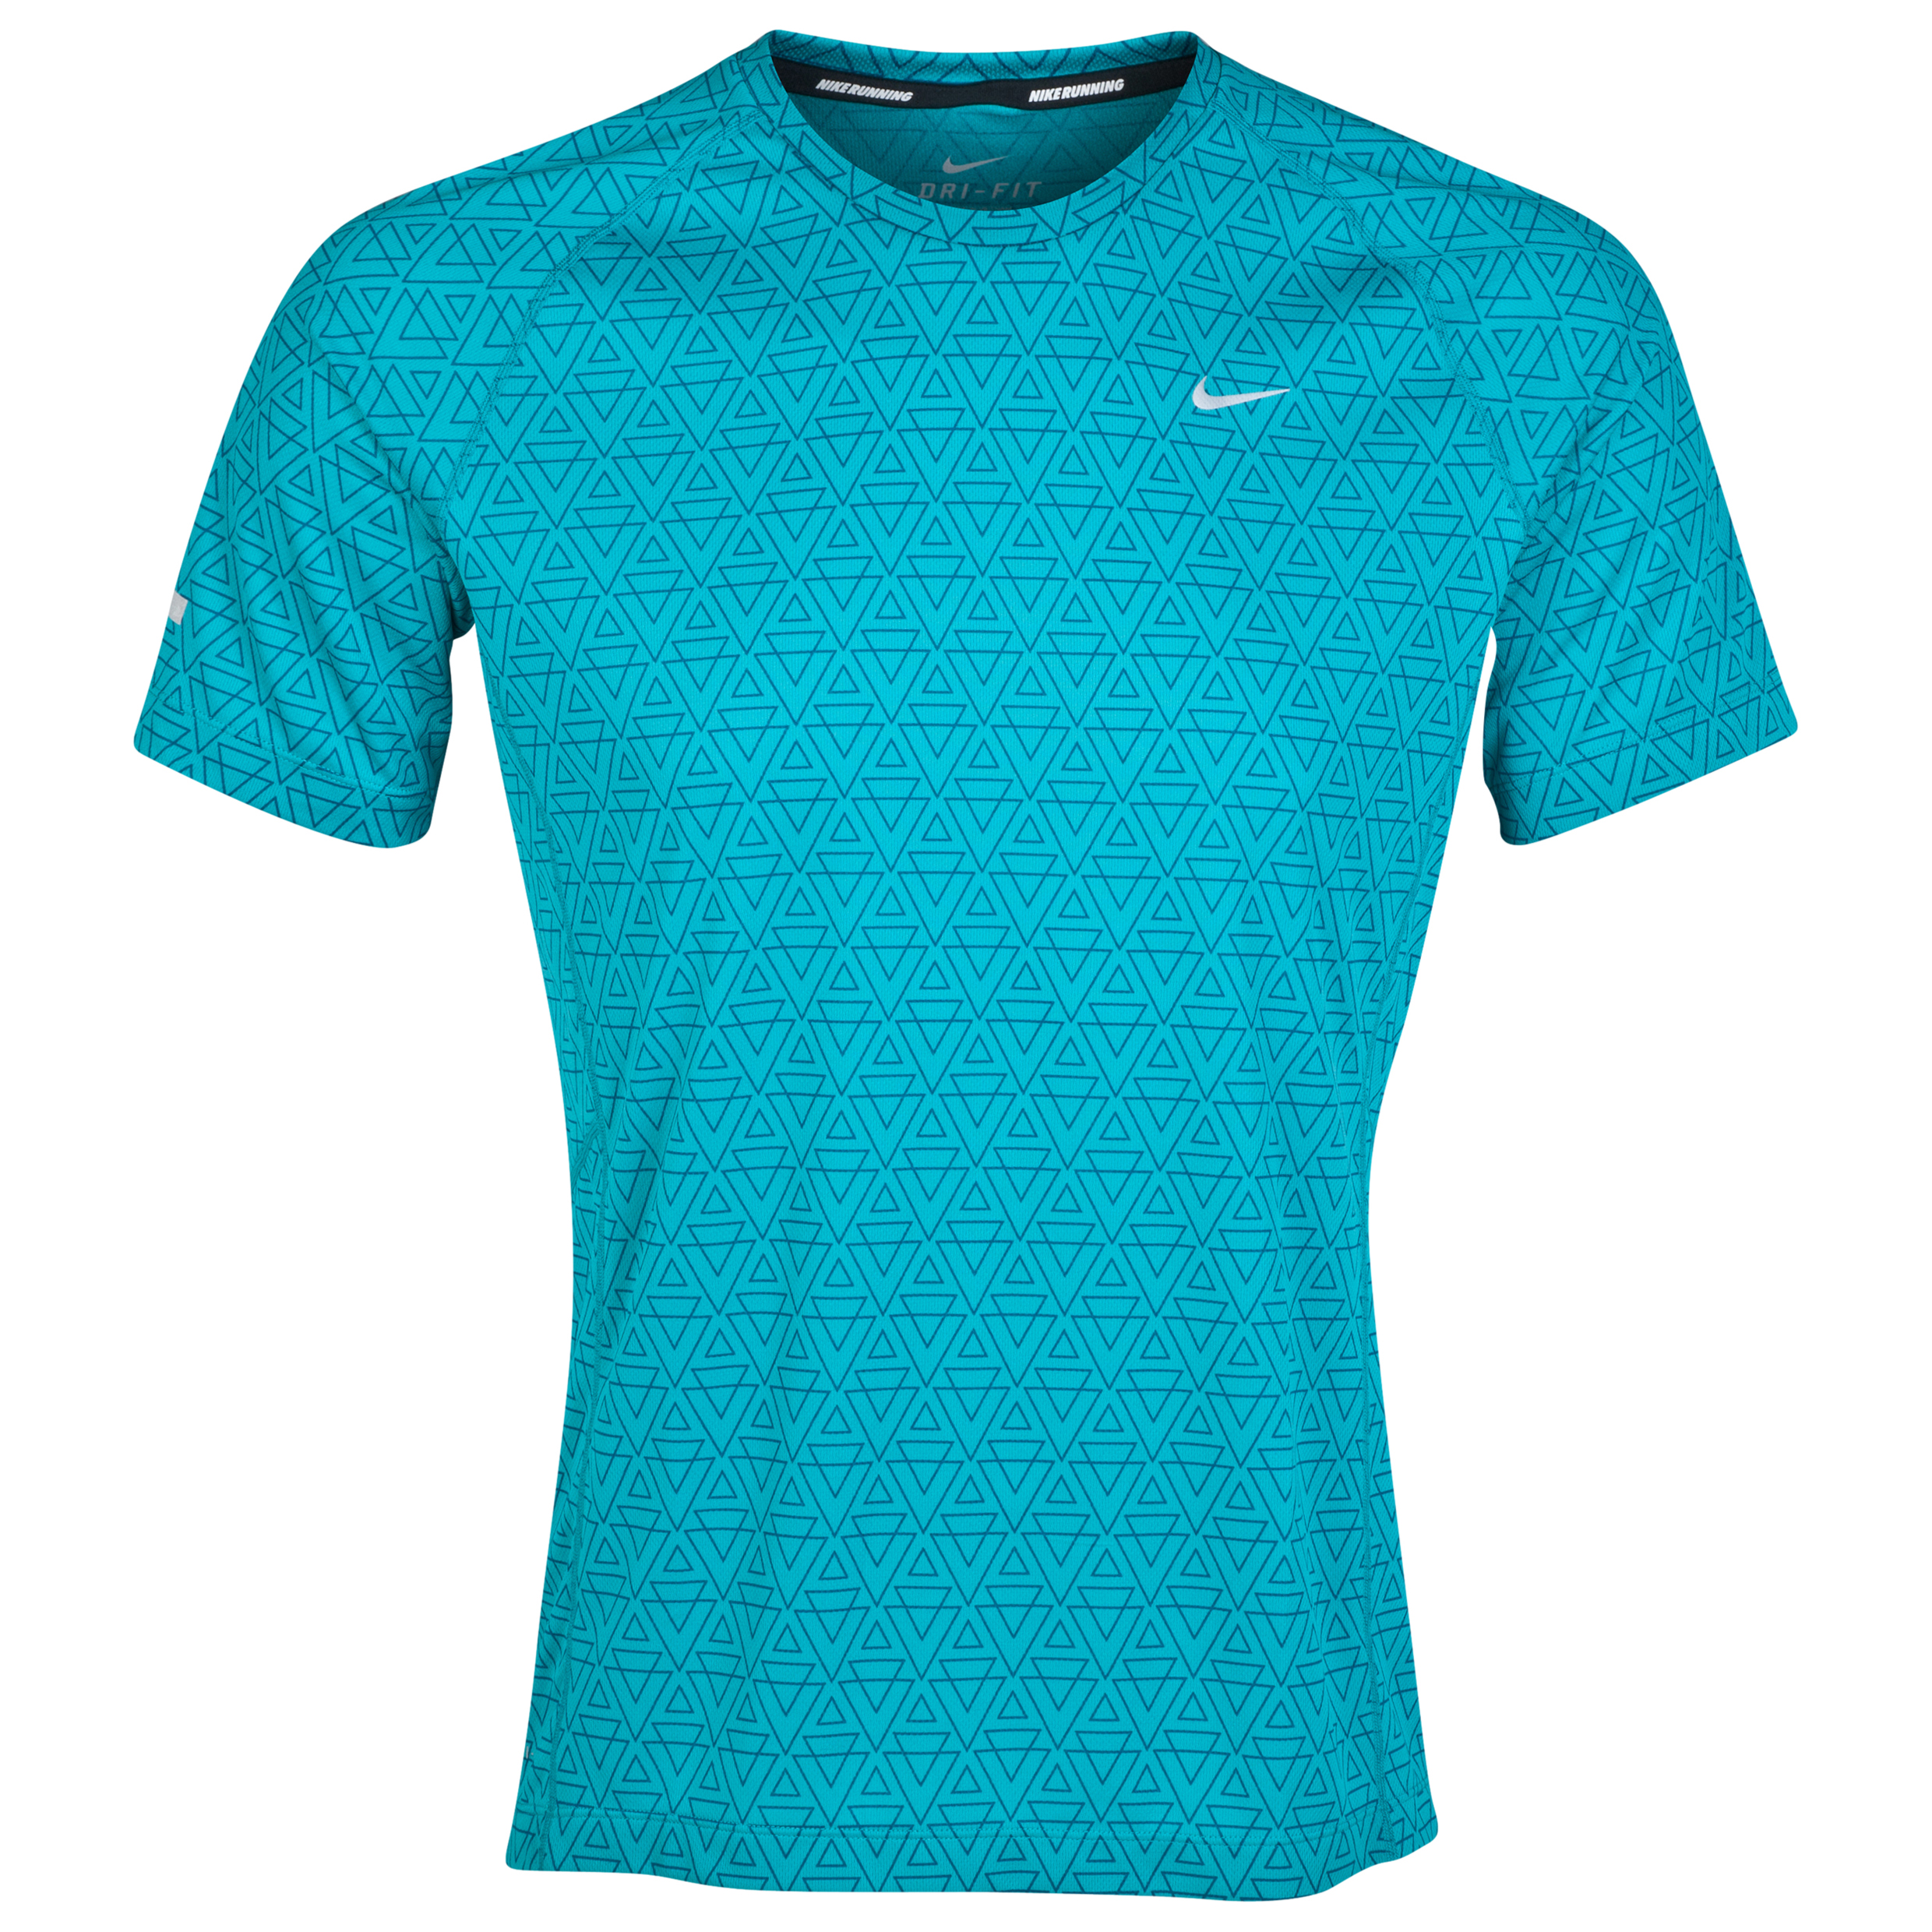 Nike Printed Miler T-Shirt Green